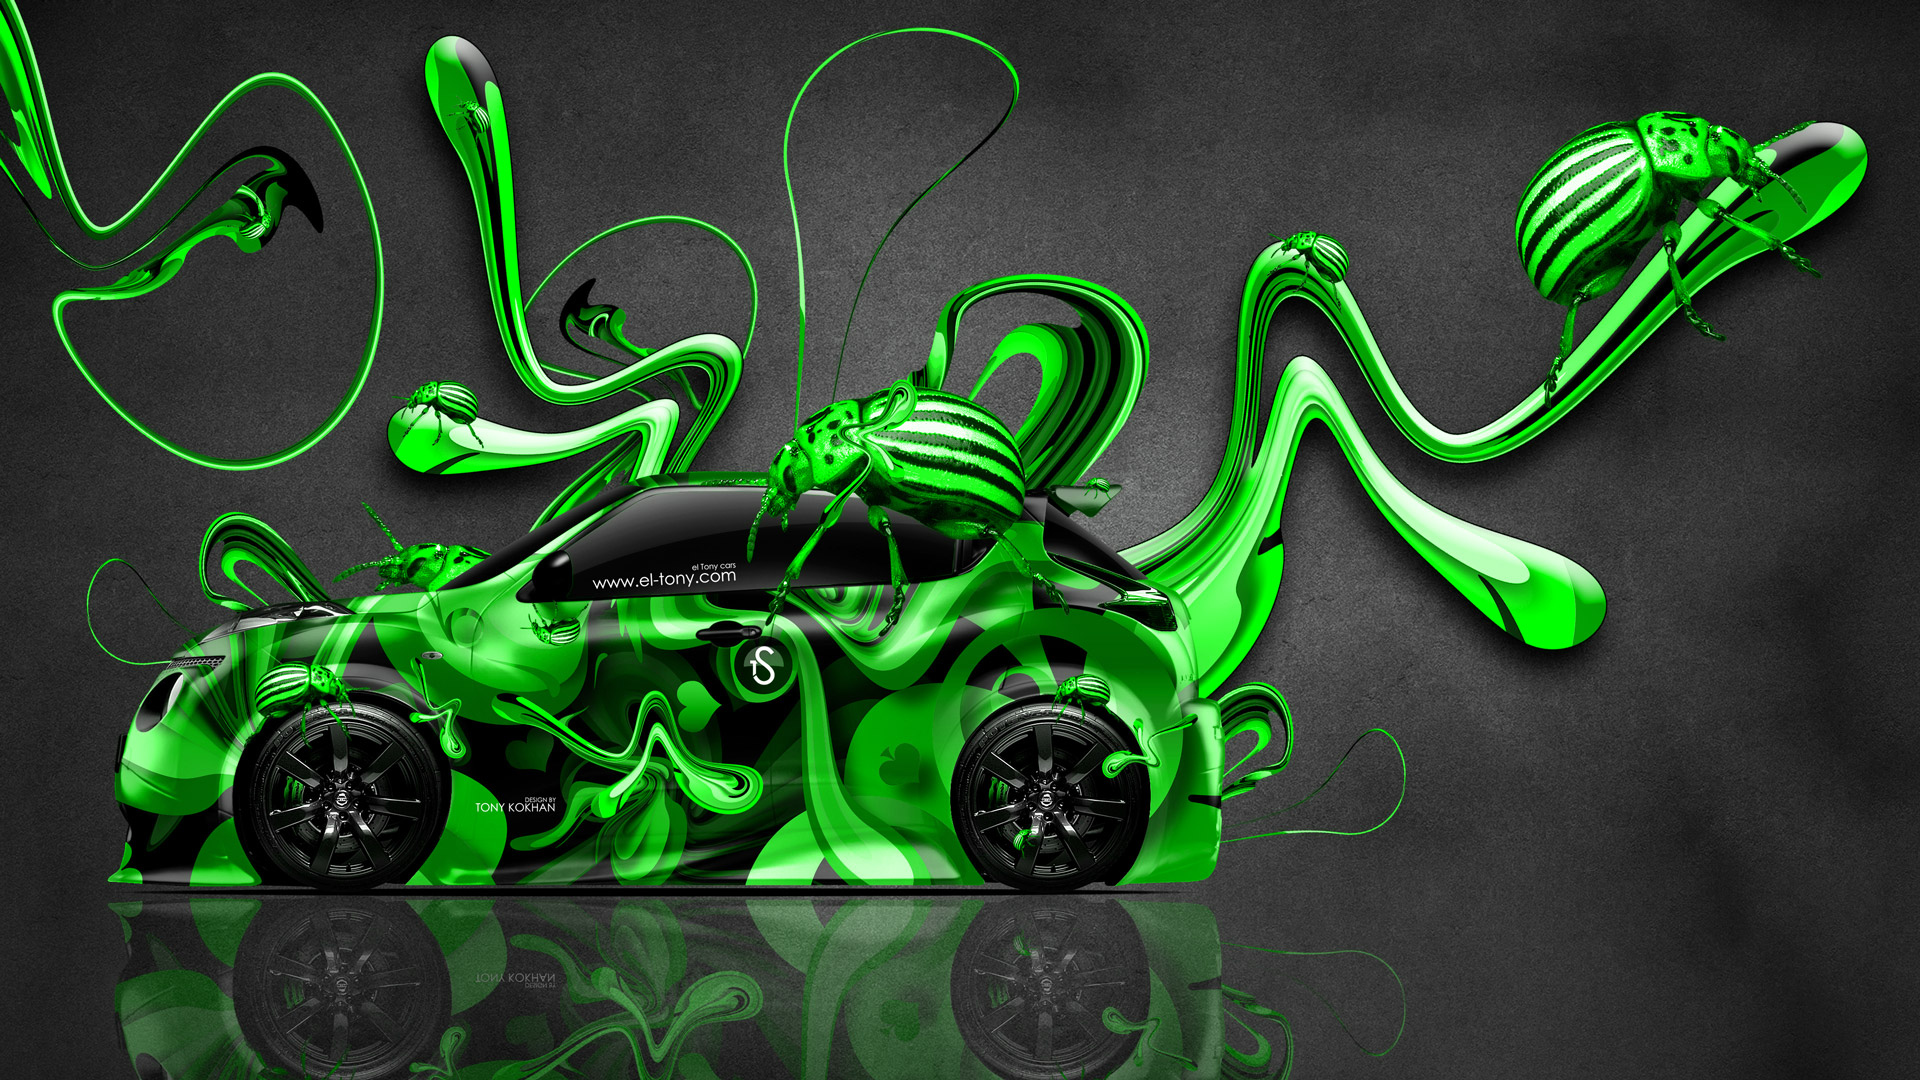 Toyota Mark2 JZX90 JDM Back Anime Samurai Aerography ... Nissan Juke R Super  Abstract Aerography Plastic Beetle .